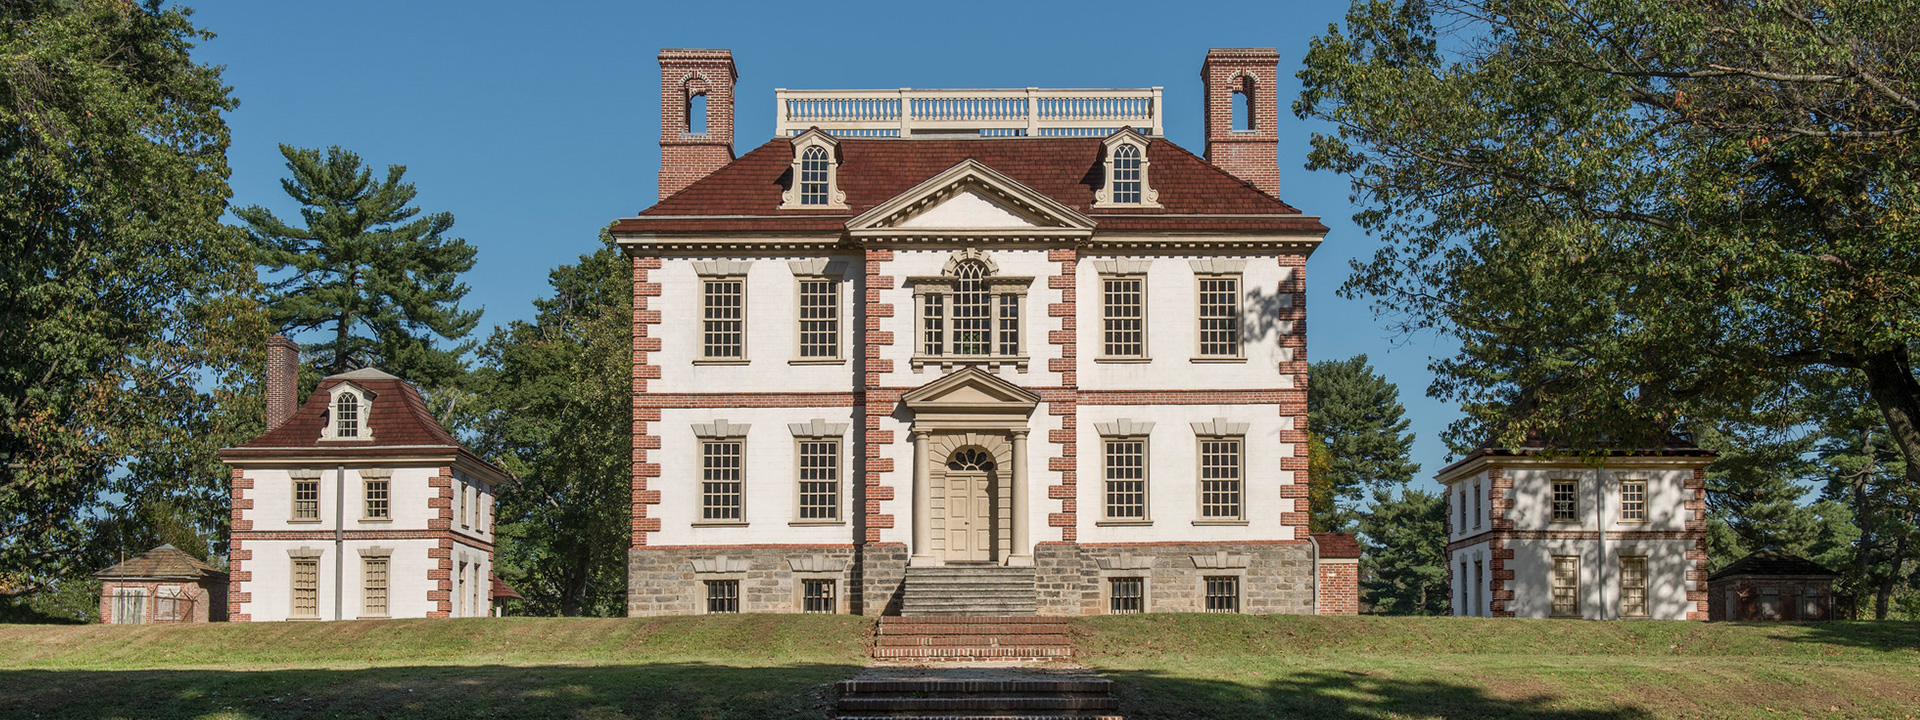 Exterior view of Mount Pleasant historic house